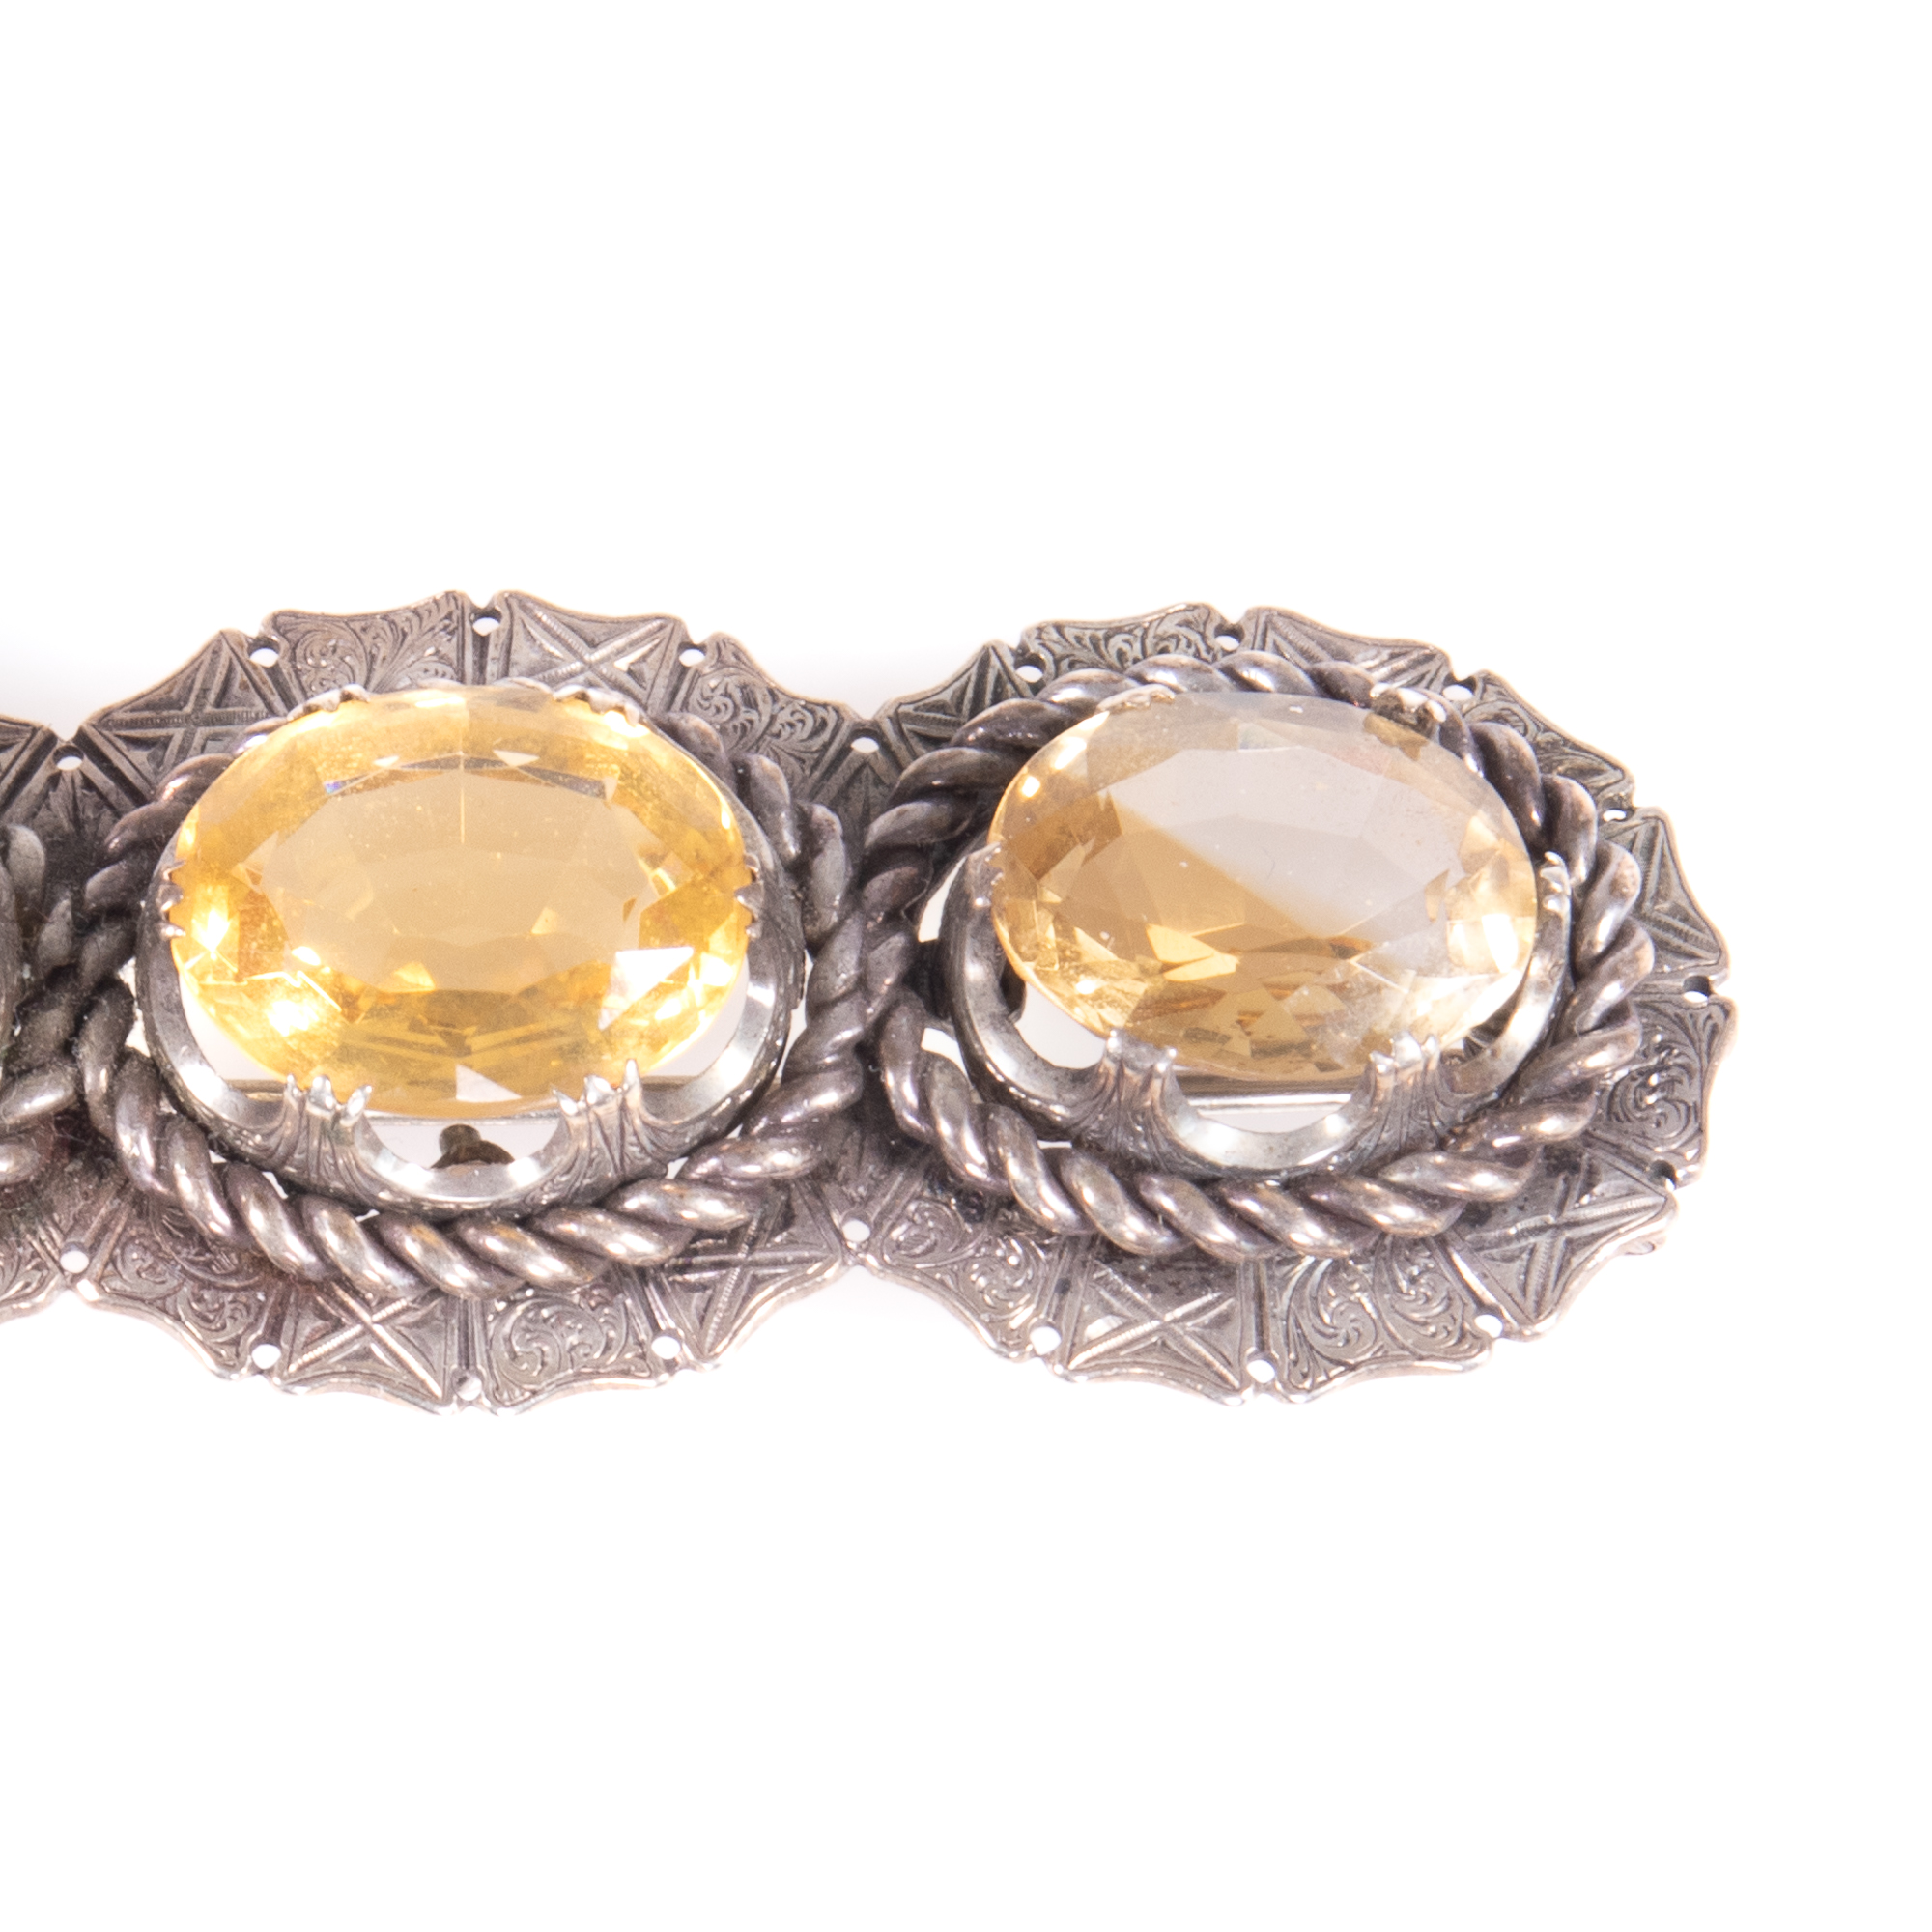 Victorian Cairngorm Silver 28.20ct Citrine Brooch ca. 1880 - Image 3 of 6